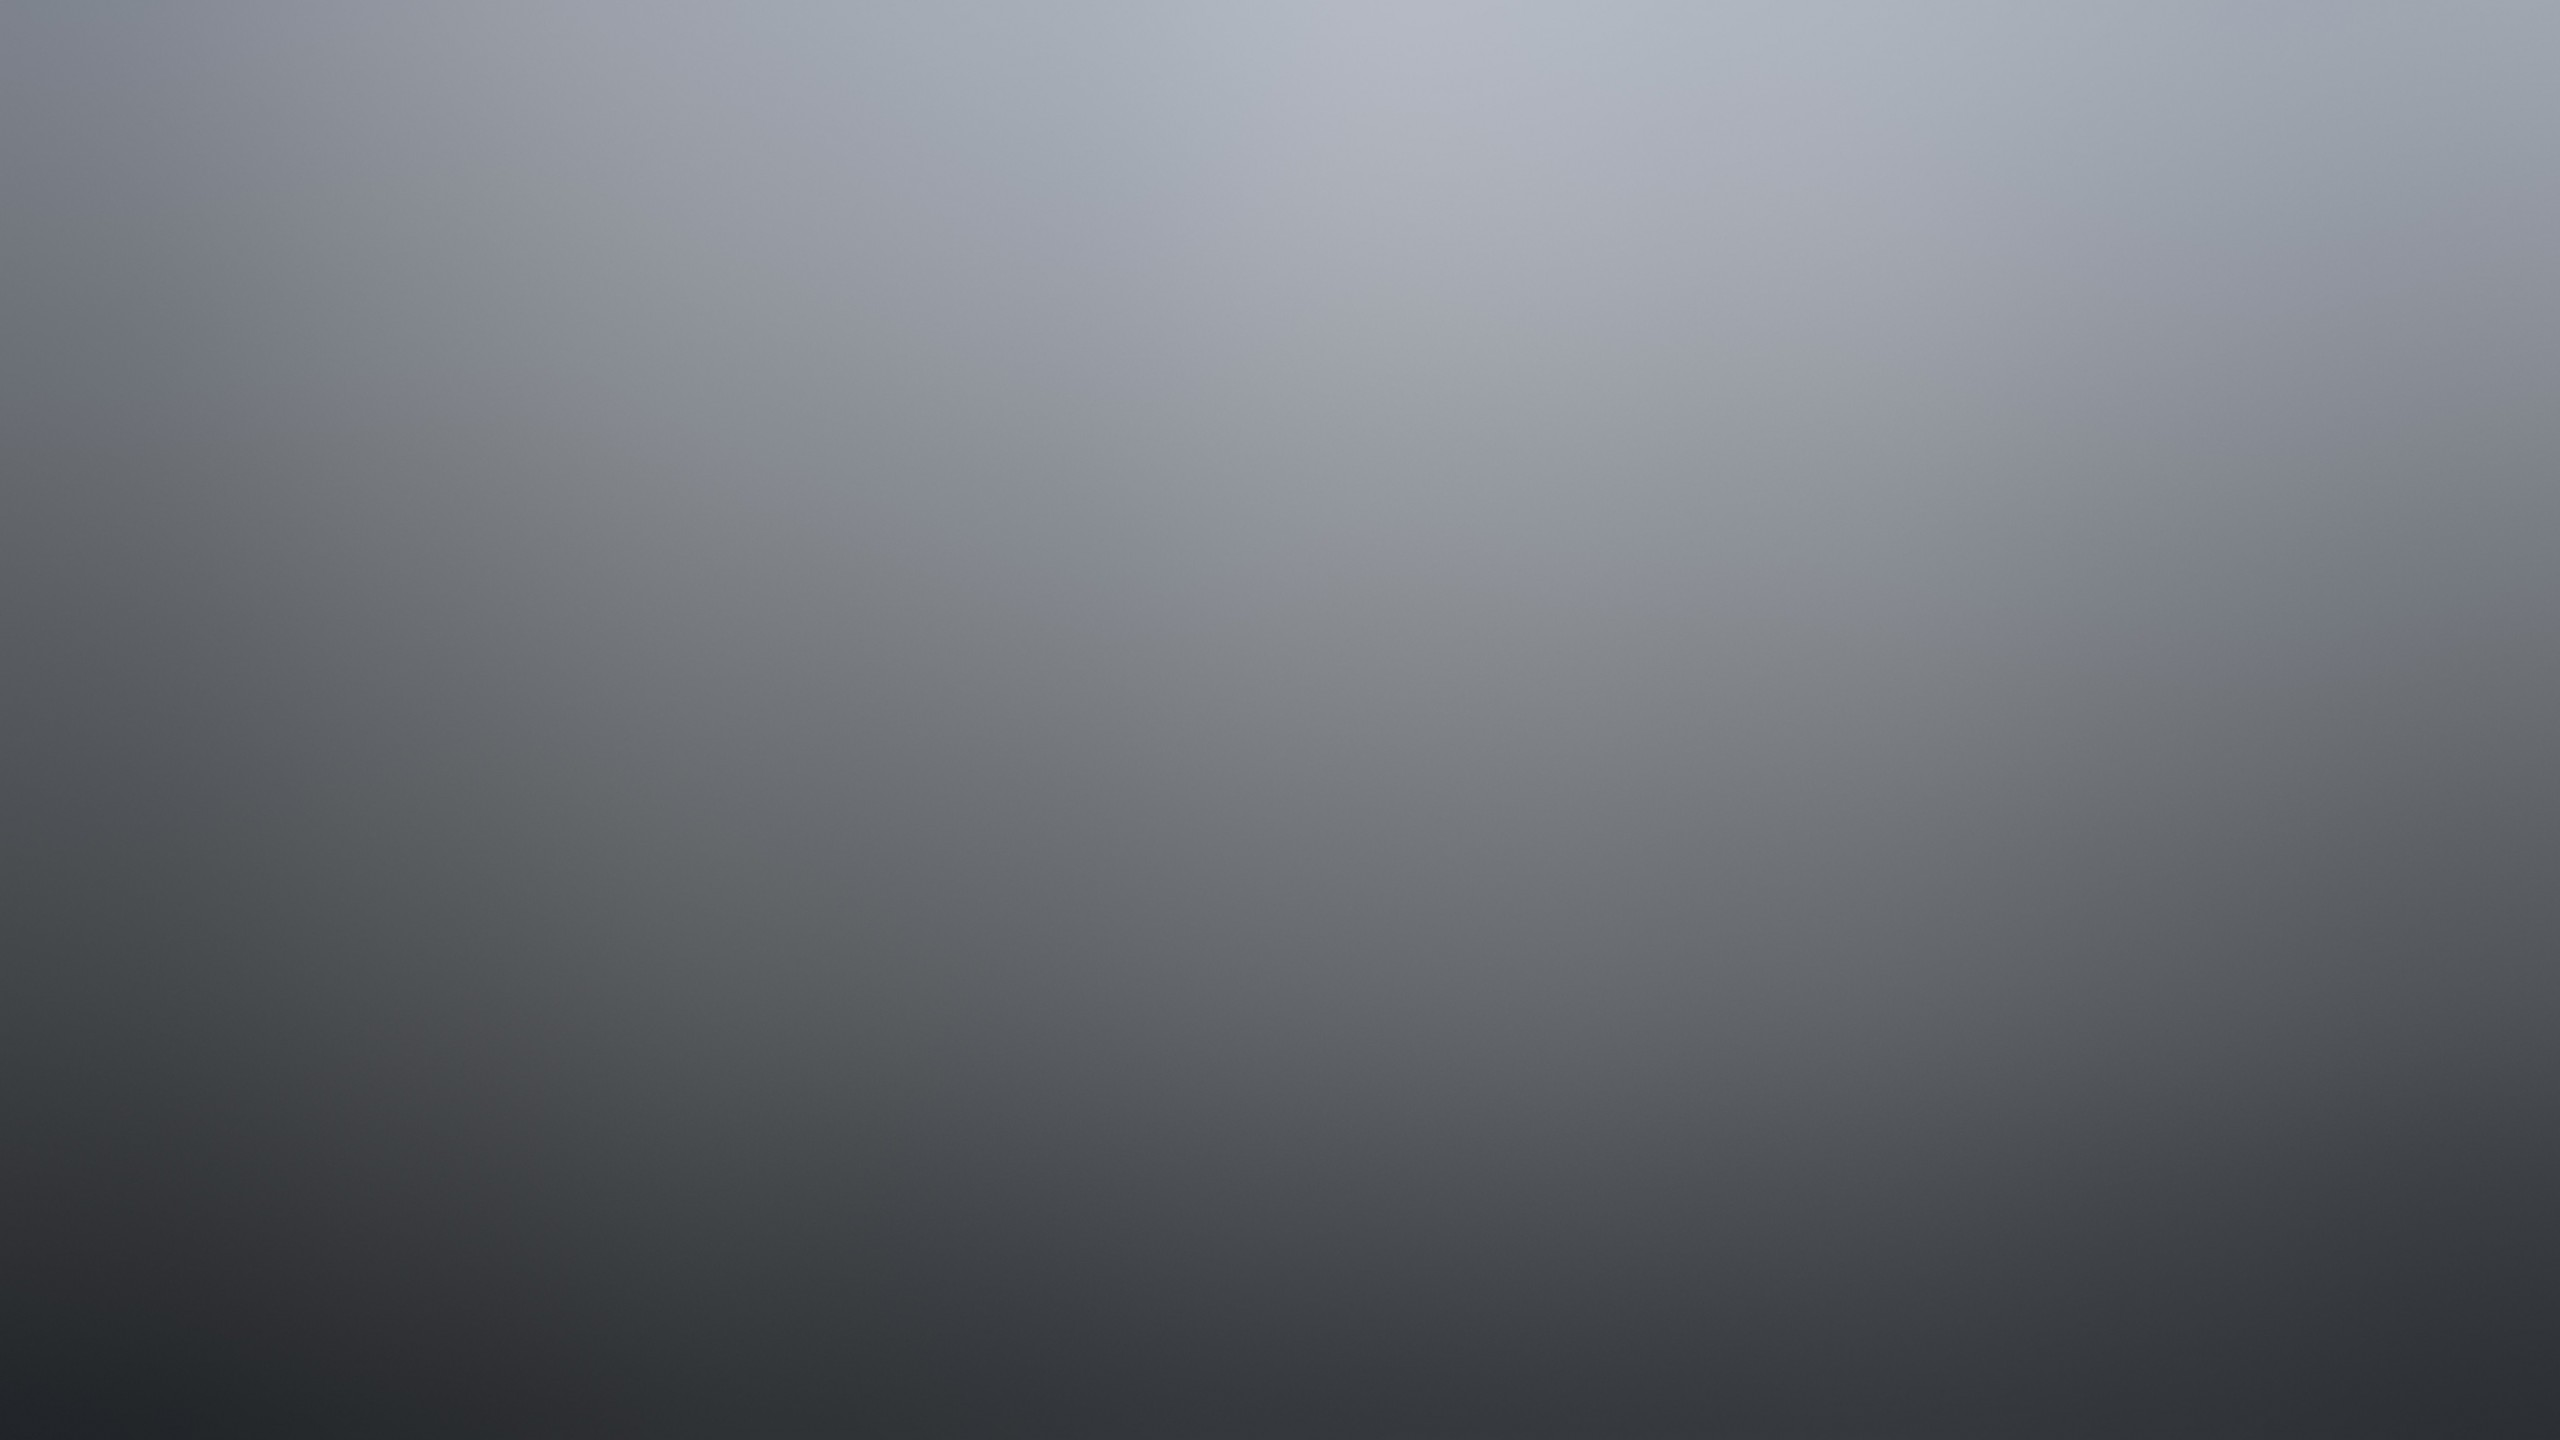 Gradient Grey HD Wallpaper For 2560x1440 Screens  HDwallpapersnet